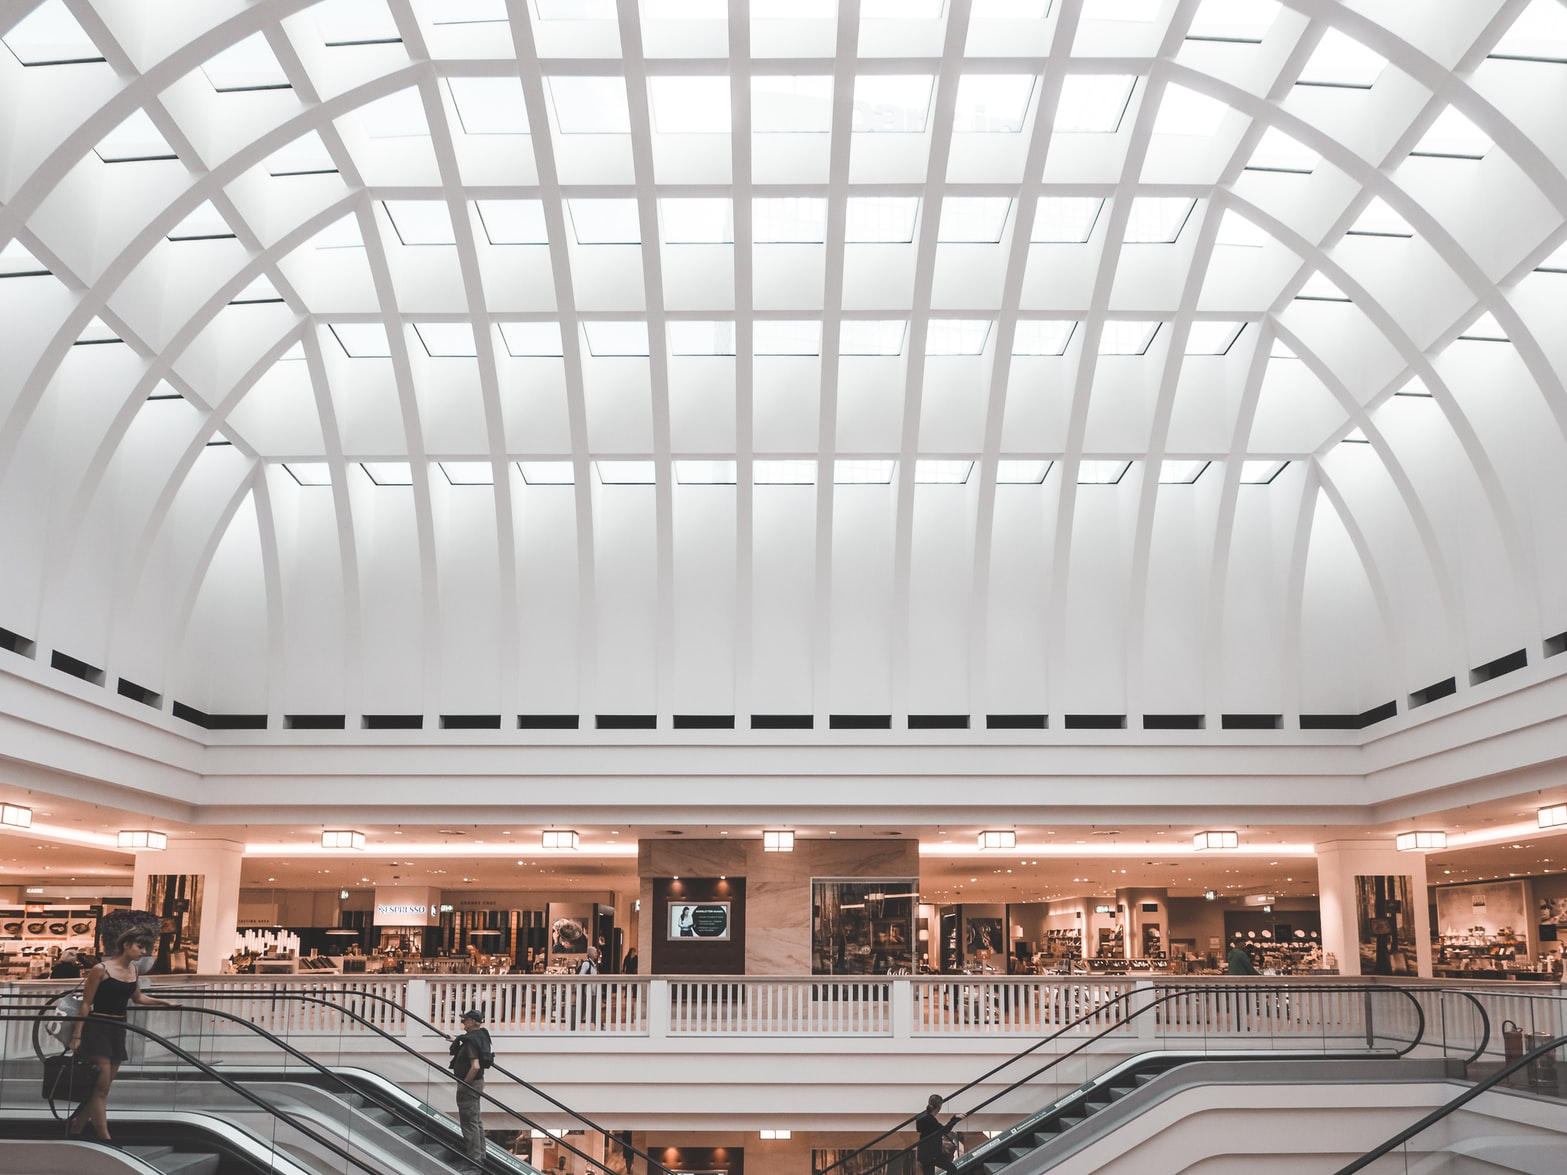 A shopping mall with a large white domed ceiling